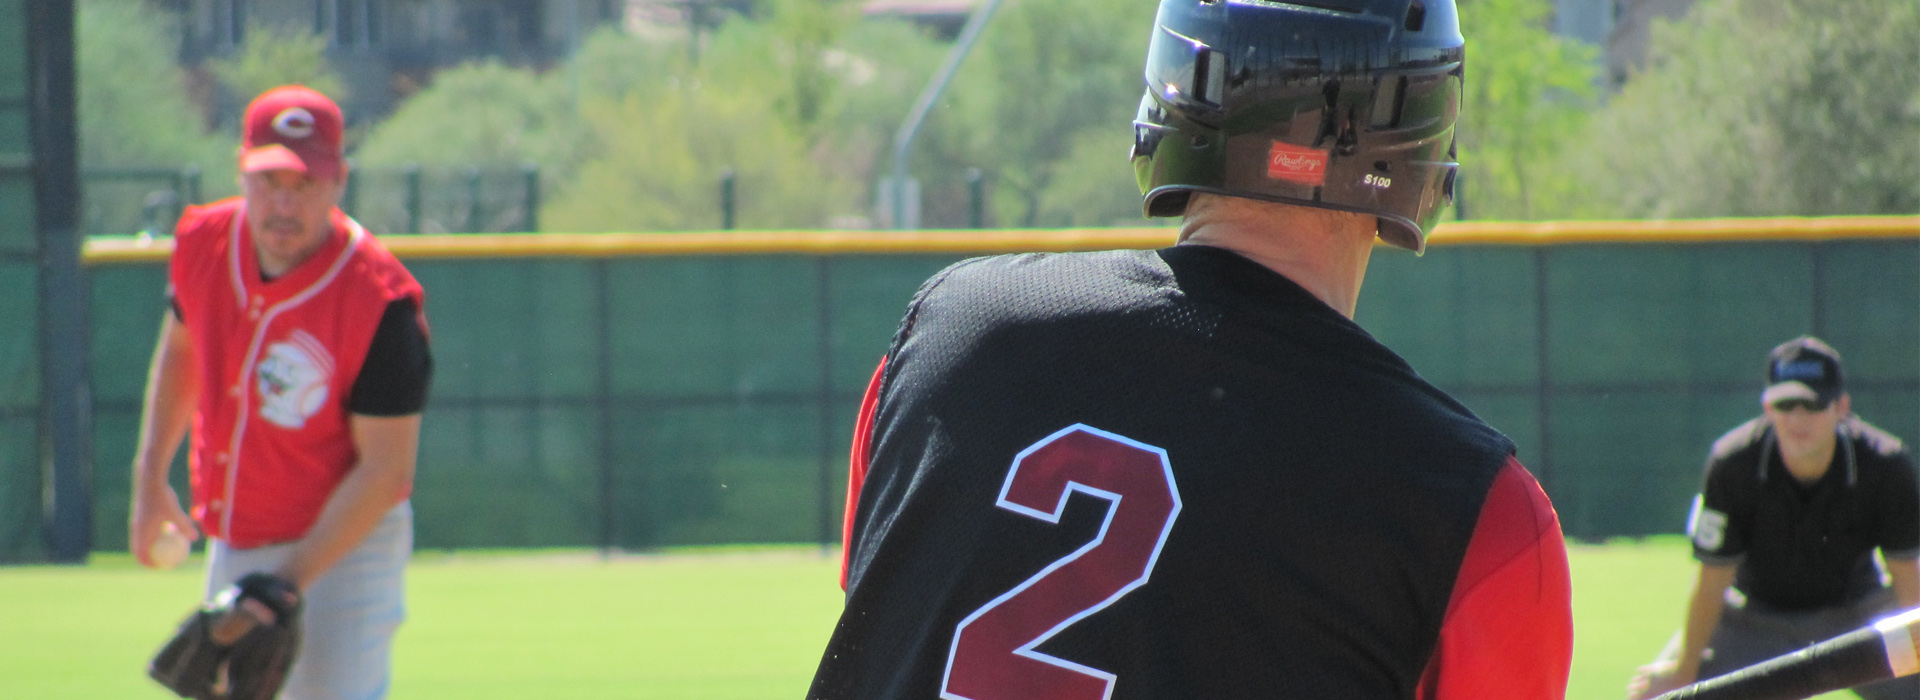 Arizona Men's Senior Baseball League - AZMSBL - Homepage3